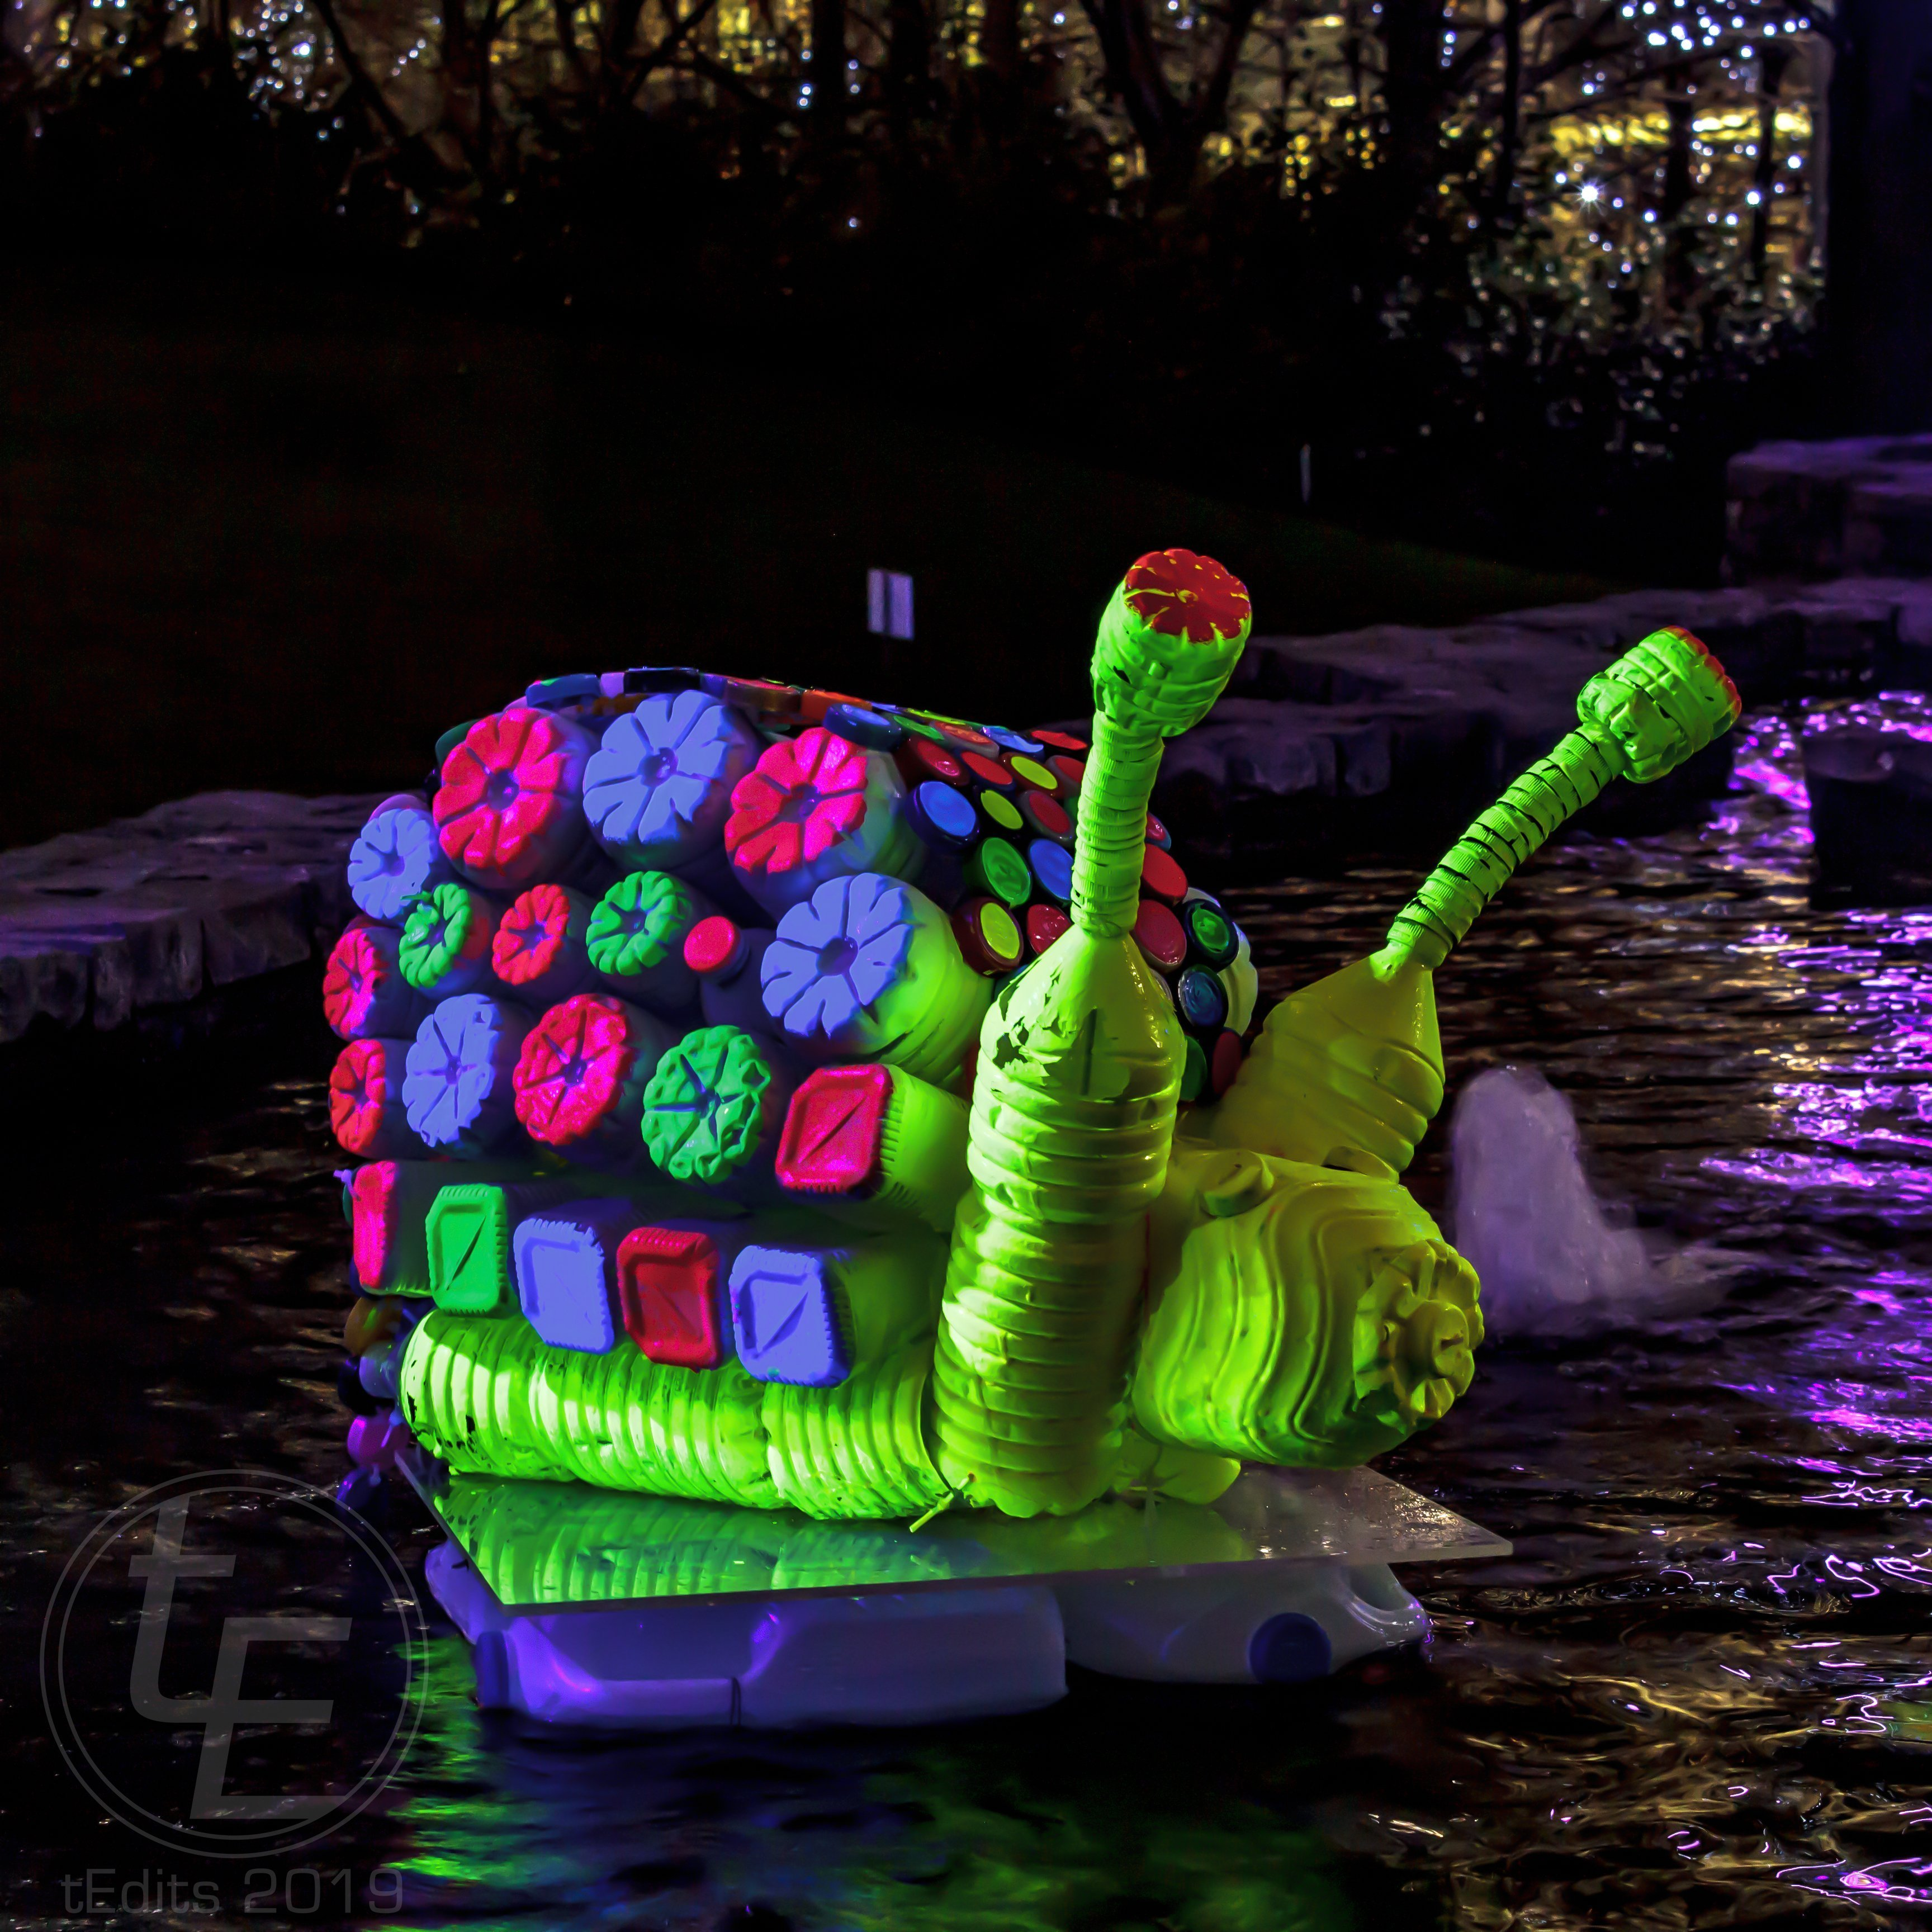 Canary Wharf Winter Lights 2019 - Floating Islands, Murude Mehmet, Snail